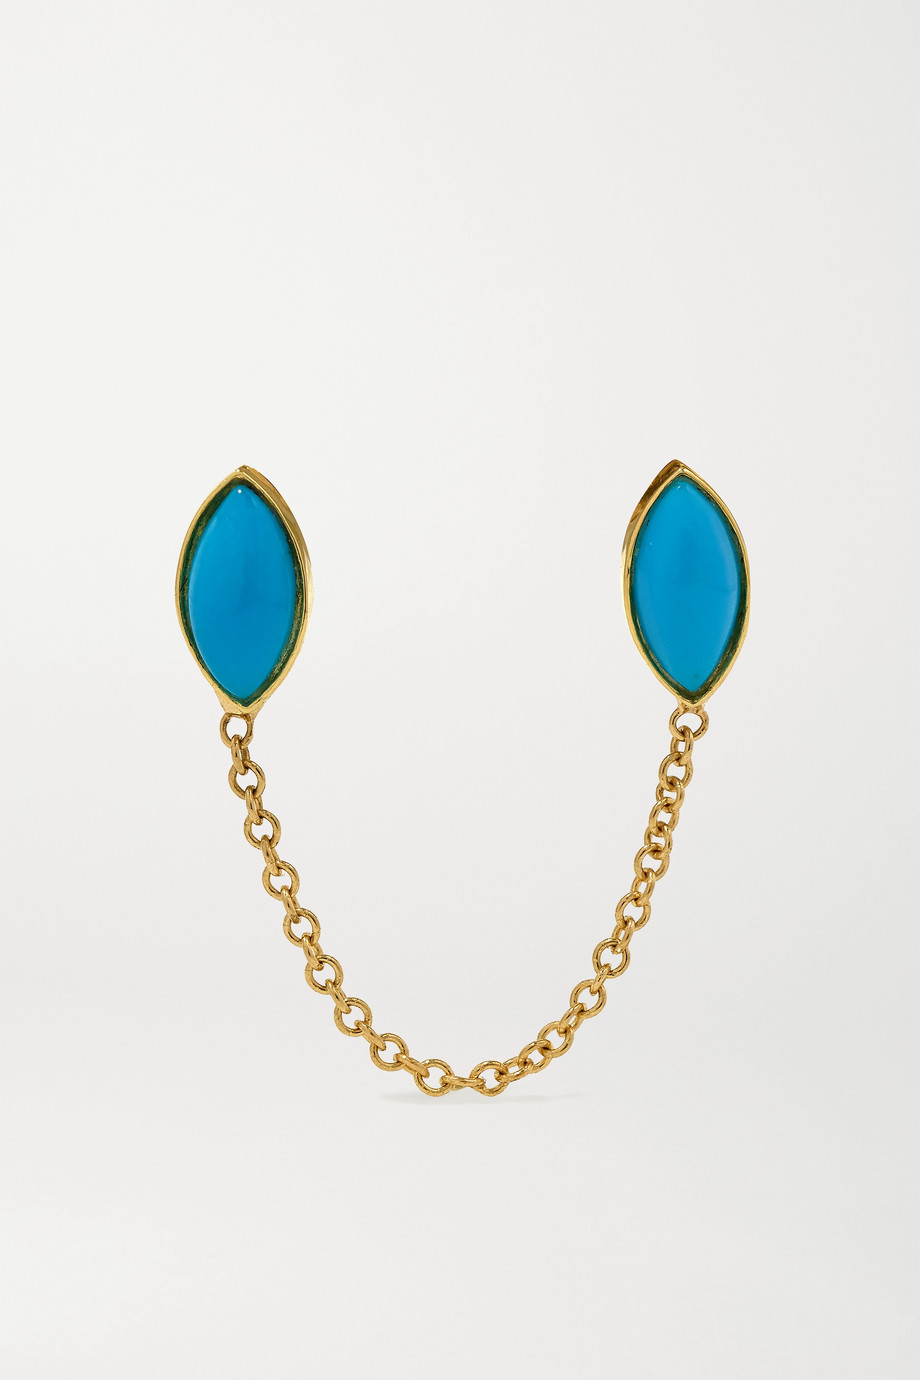 JENNIFER MEYER 18-karat gold turquoise earring